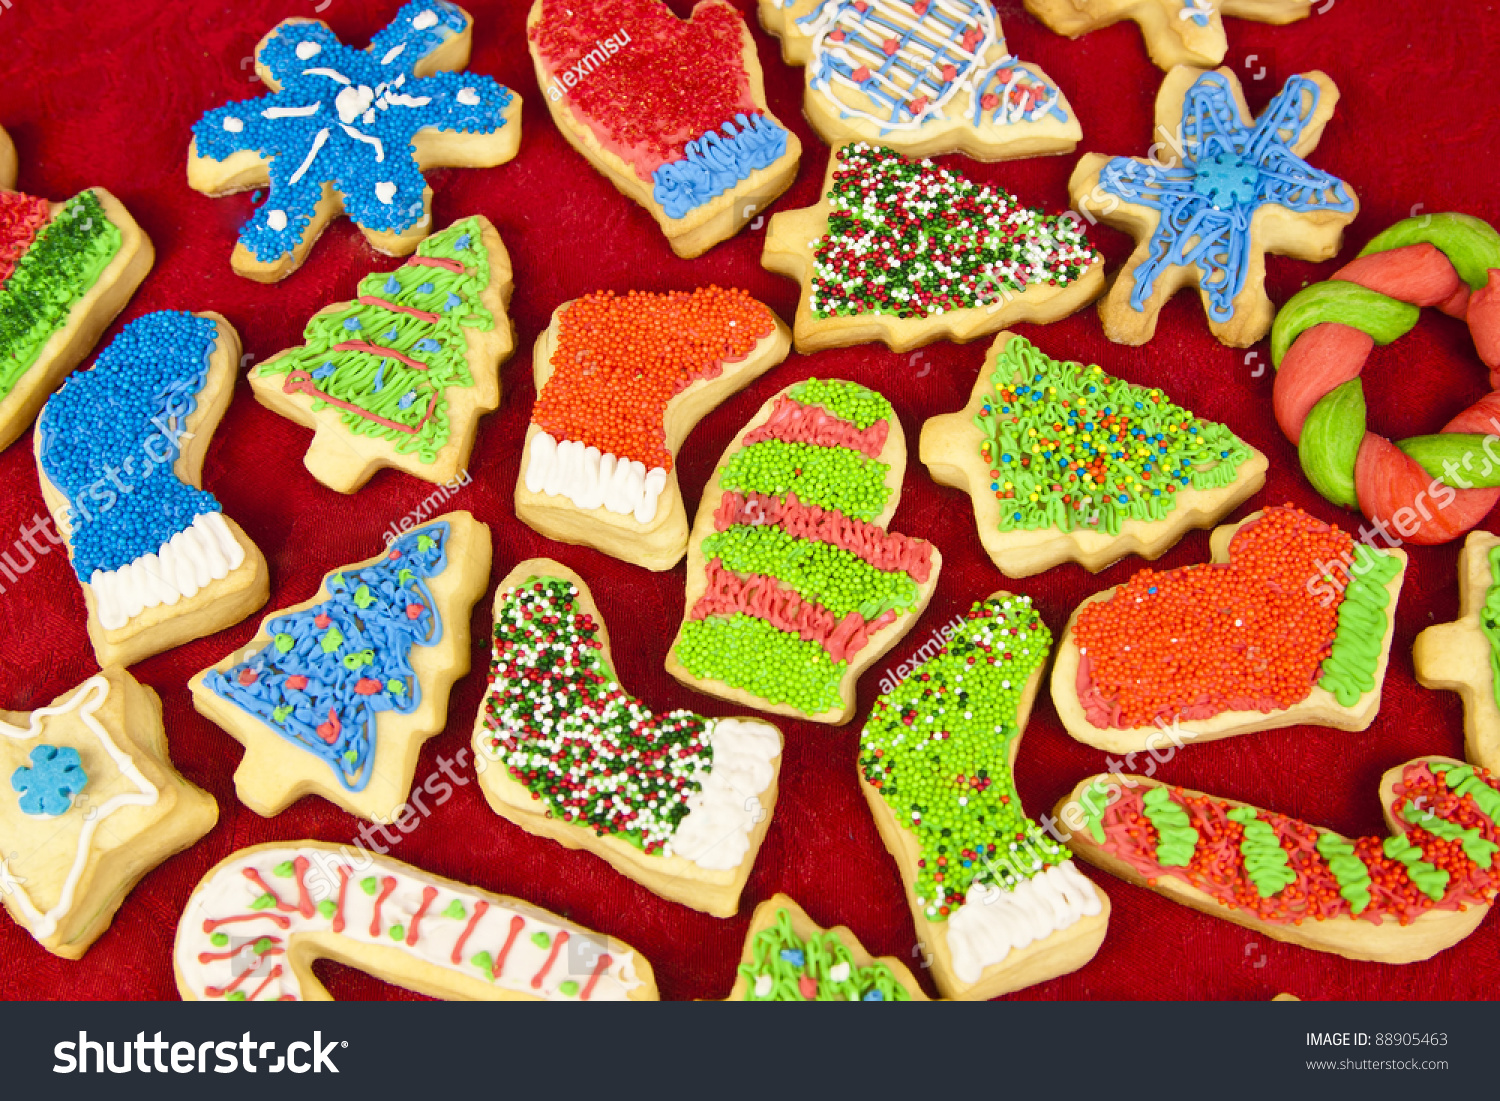 Decorating With Sprinkles Decorating Christmas Cookies With Sprinkles Opava Recipes